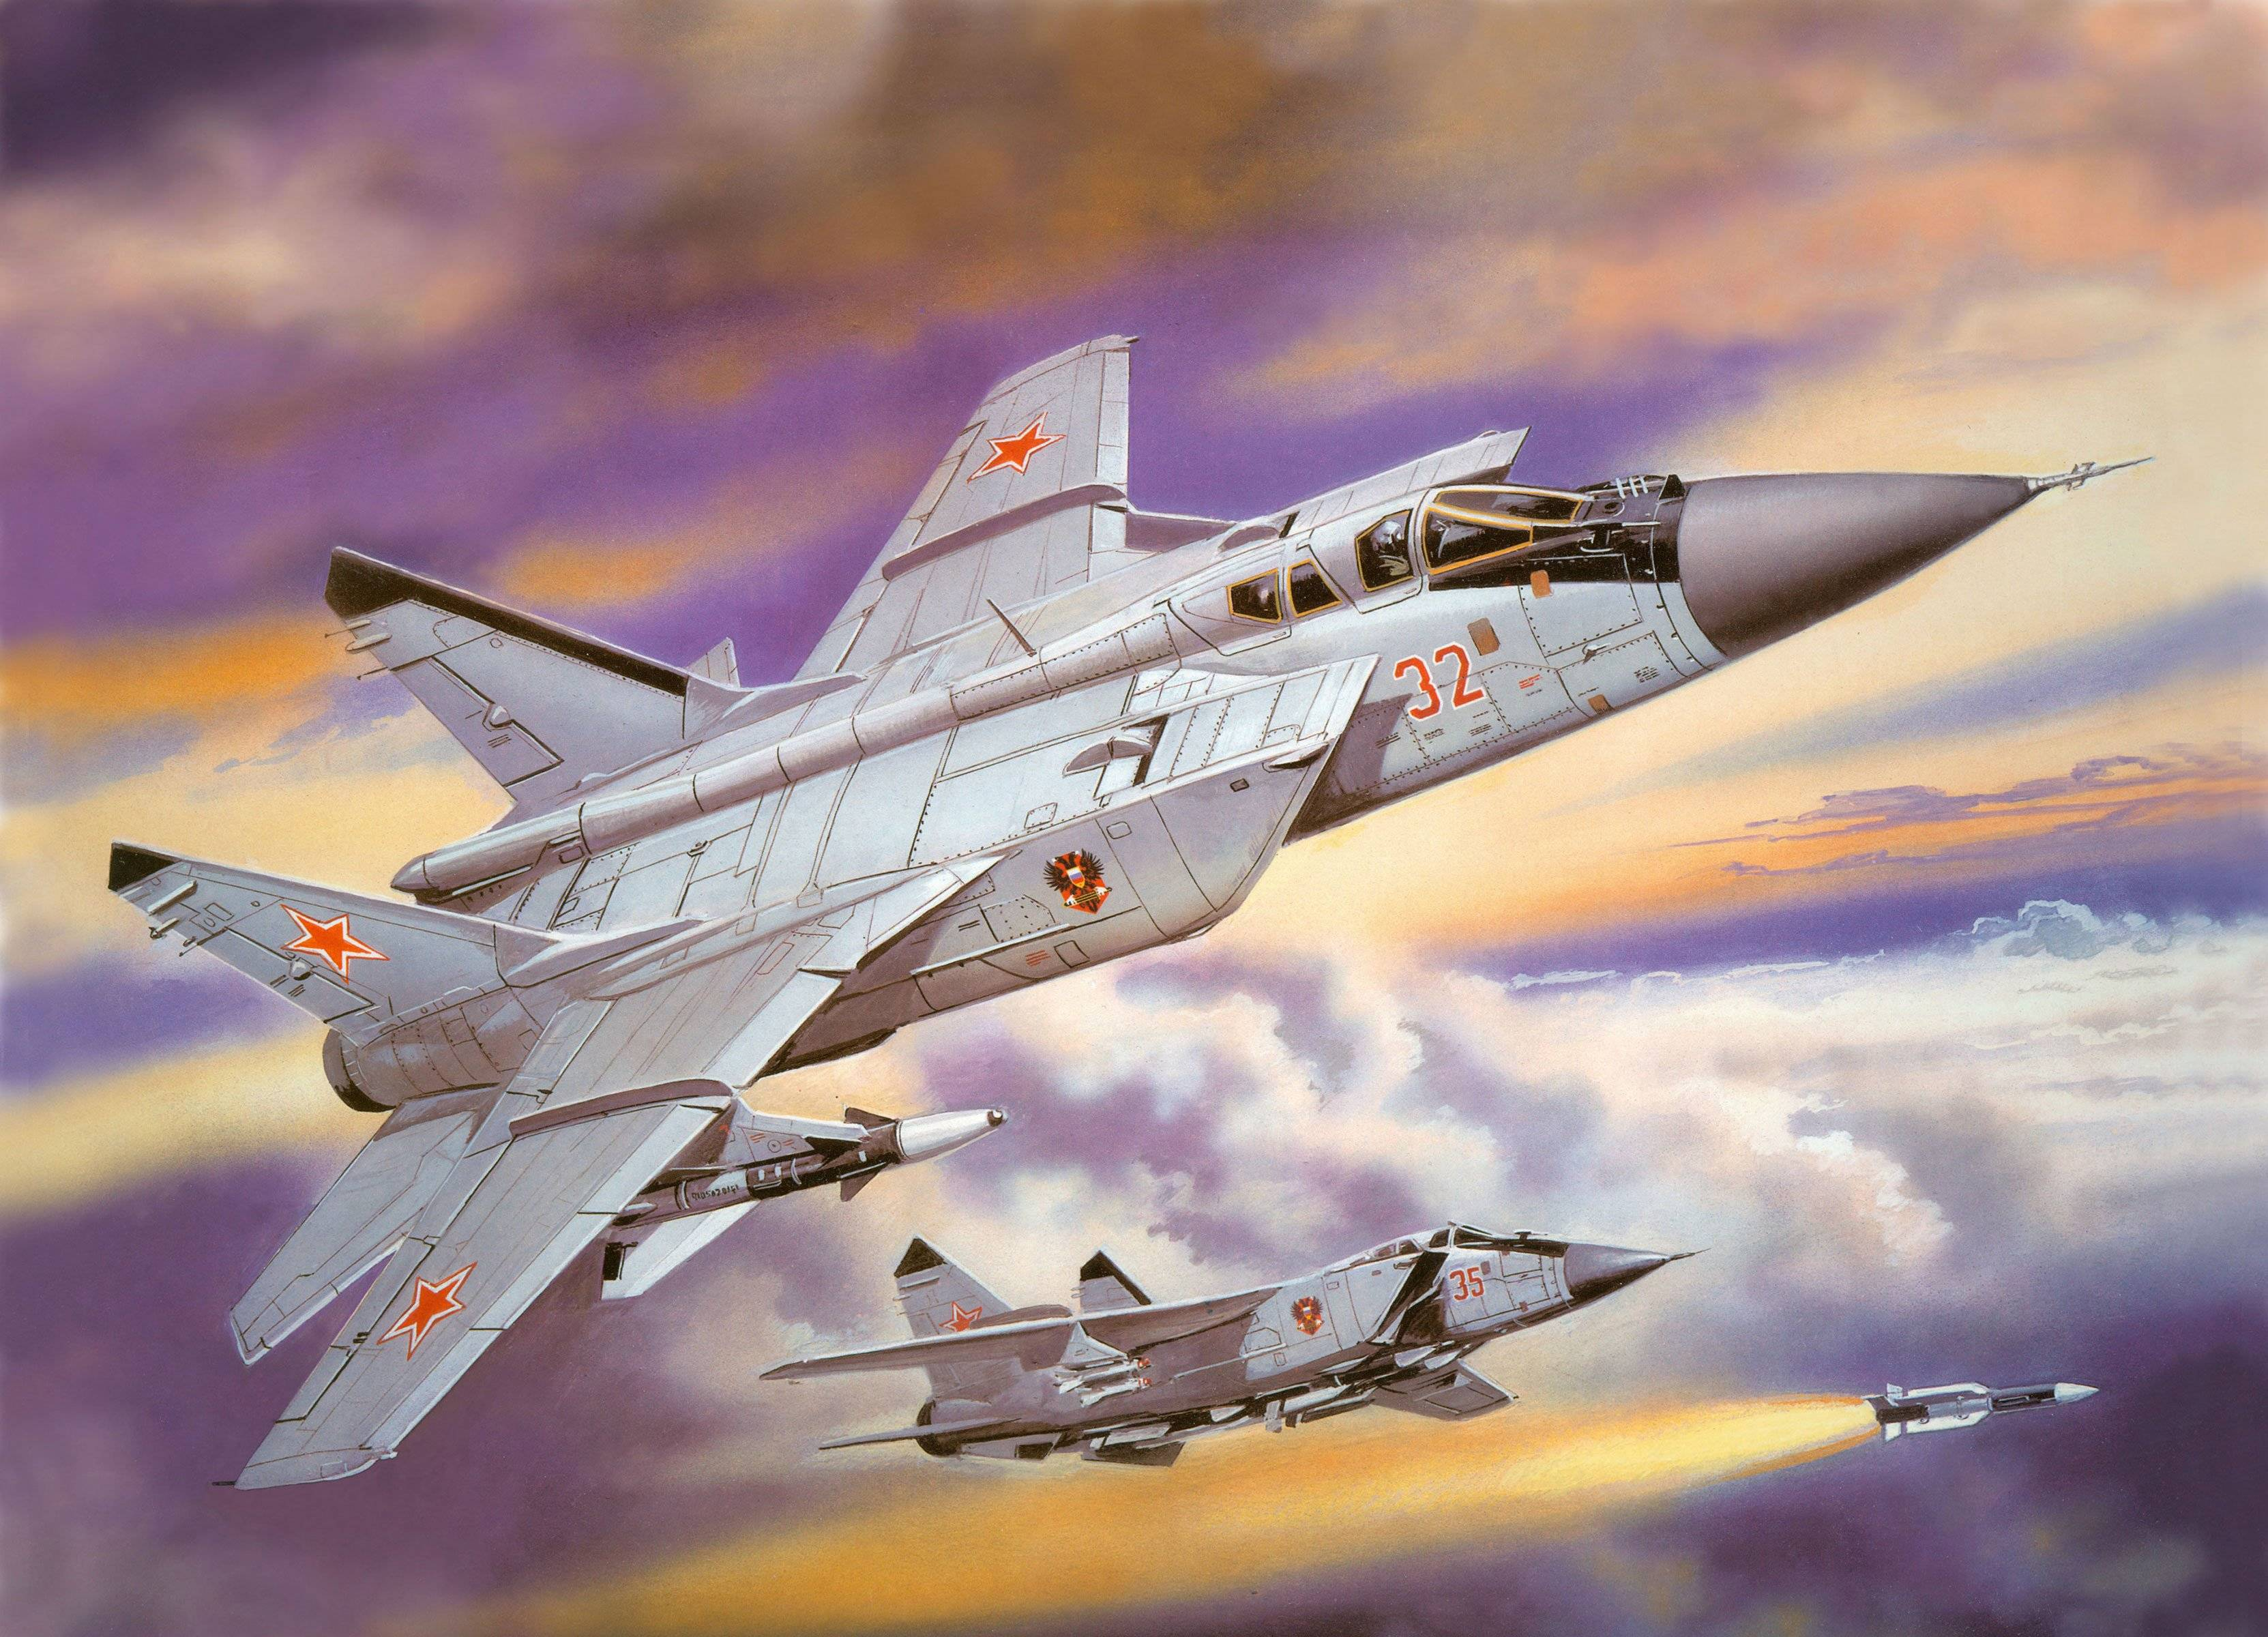 wallpaper mig 23 fighter - photo #17